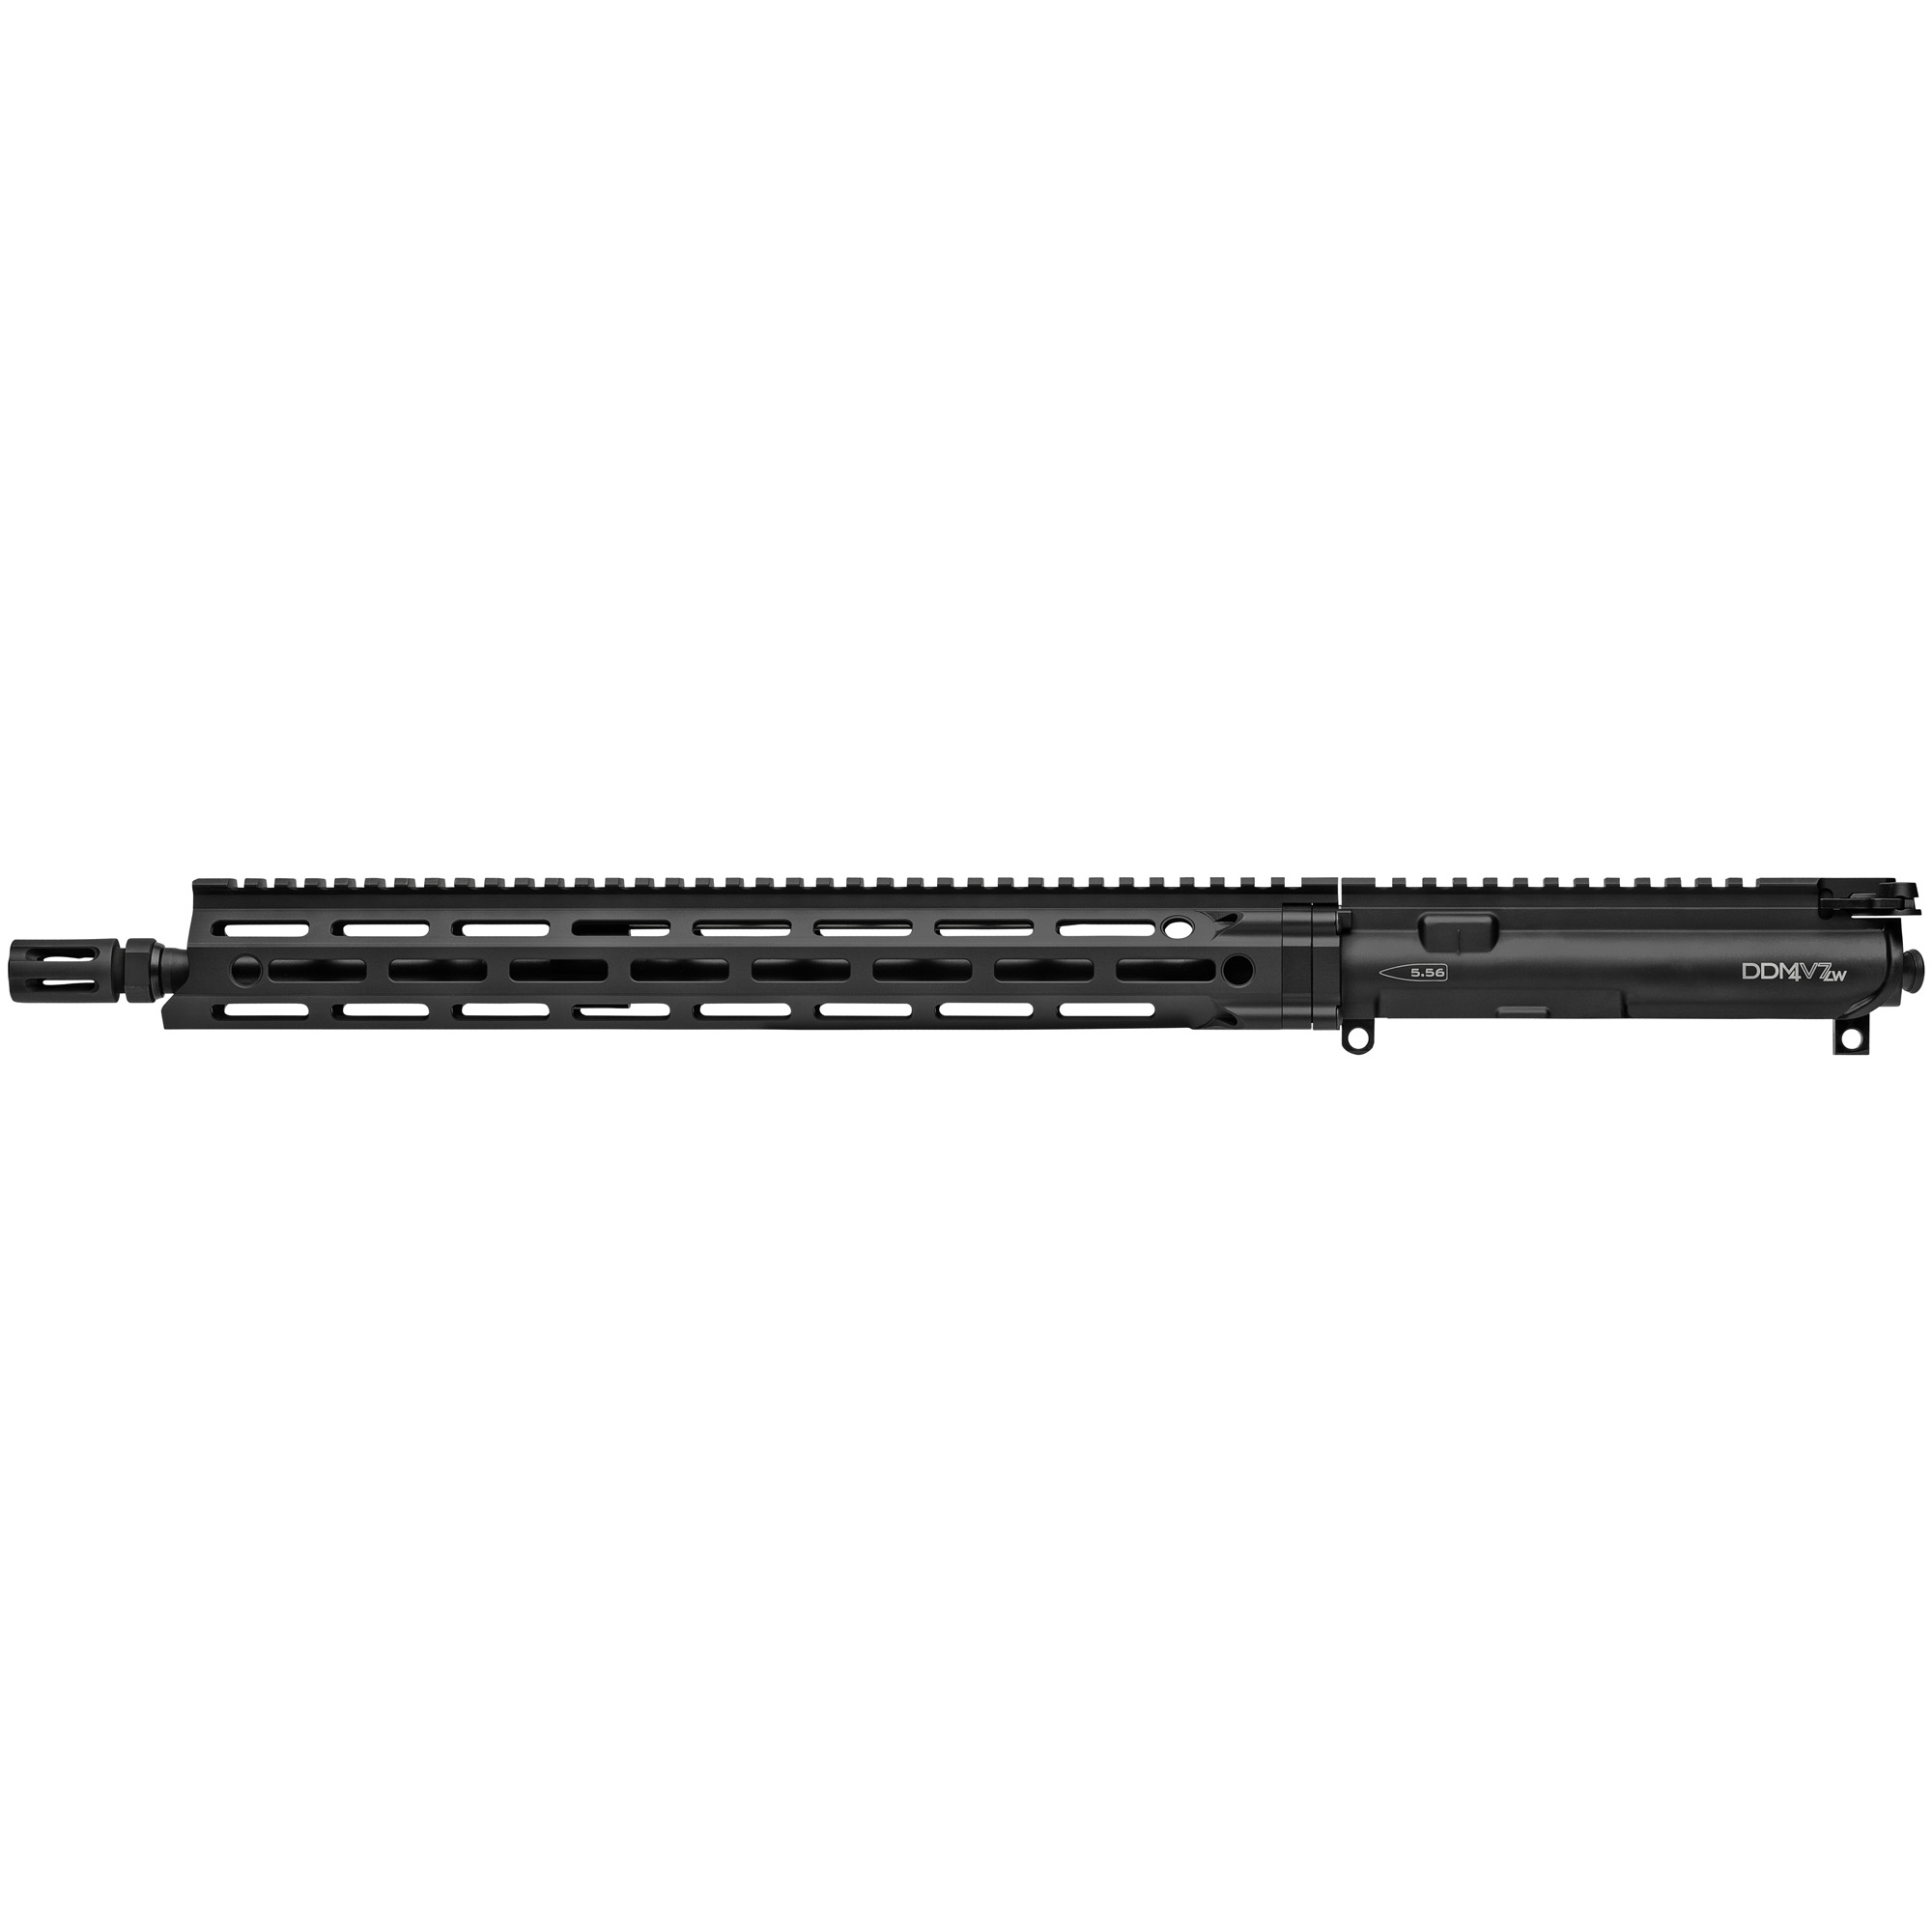 "The Daniel Defense M4 V7 LW Upper Receiver Group is built around a Cold Hammer Forged 16"" Lightweight profile barrel-which is two ounces less than a standard V7 barrel-and equipped with a DD improved Flash Suppressor to reduce flash signature. It features a mid-length gas system for smooth"" reliable cycling and reduced wear on moving parts. A free-floating MFR 15.0 handguard offers incredible weight savings as well as superior cooling"" ergonomics"" and modularity while maintaining the strength and durability expected from Daniel Defense. With the M-LOK attachment points that run along 7 positions and an uninterrupted 1913 Picatinny rail on top"" the V7 LW Upper Receiver Group has plenty of room for the sights"" optics"" and accessories the user may require. The new independently ambi GRIP-N-RIP Charging Handle accommodates left- and right-handed shooters and is engineered for suppressed fire"" with anti-gas features that redirect gas flow upward and away from the face and operator. All Daniel Defense complete upper receiver groups come standard with an M16 profile bolt carrier group."